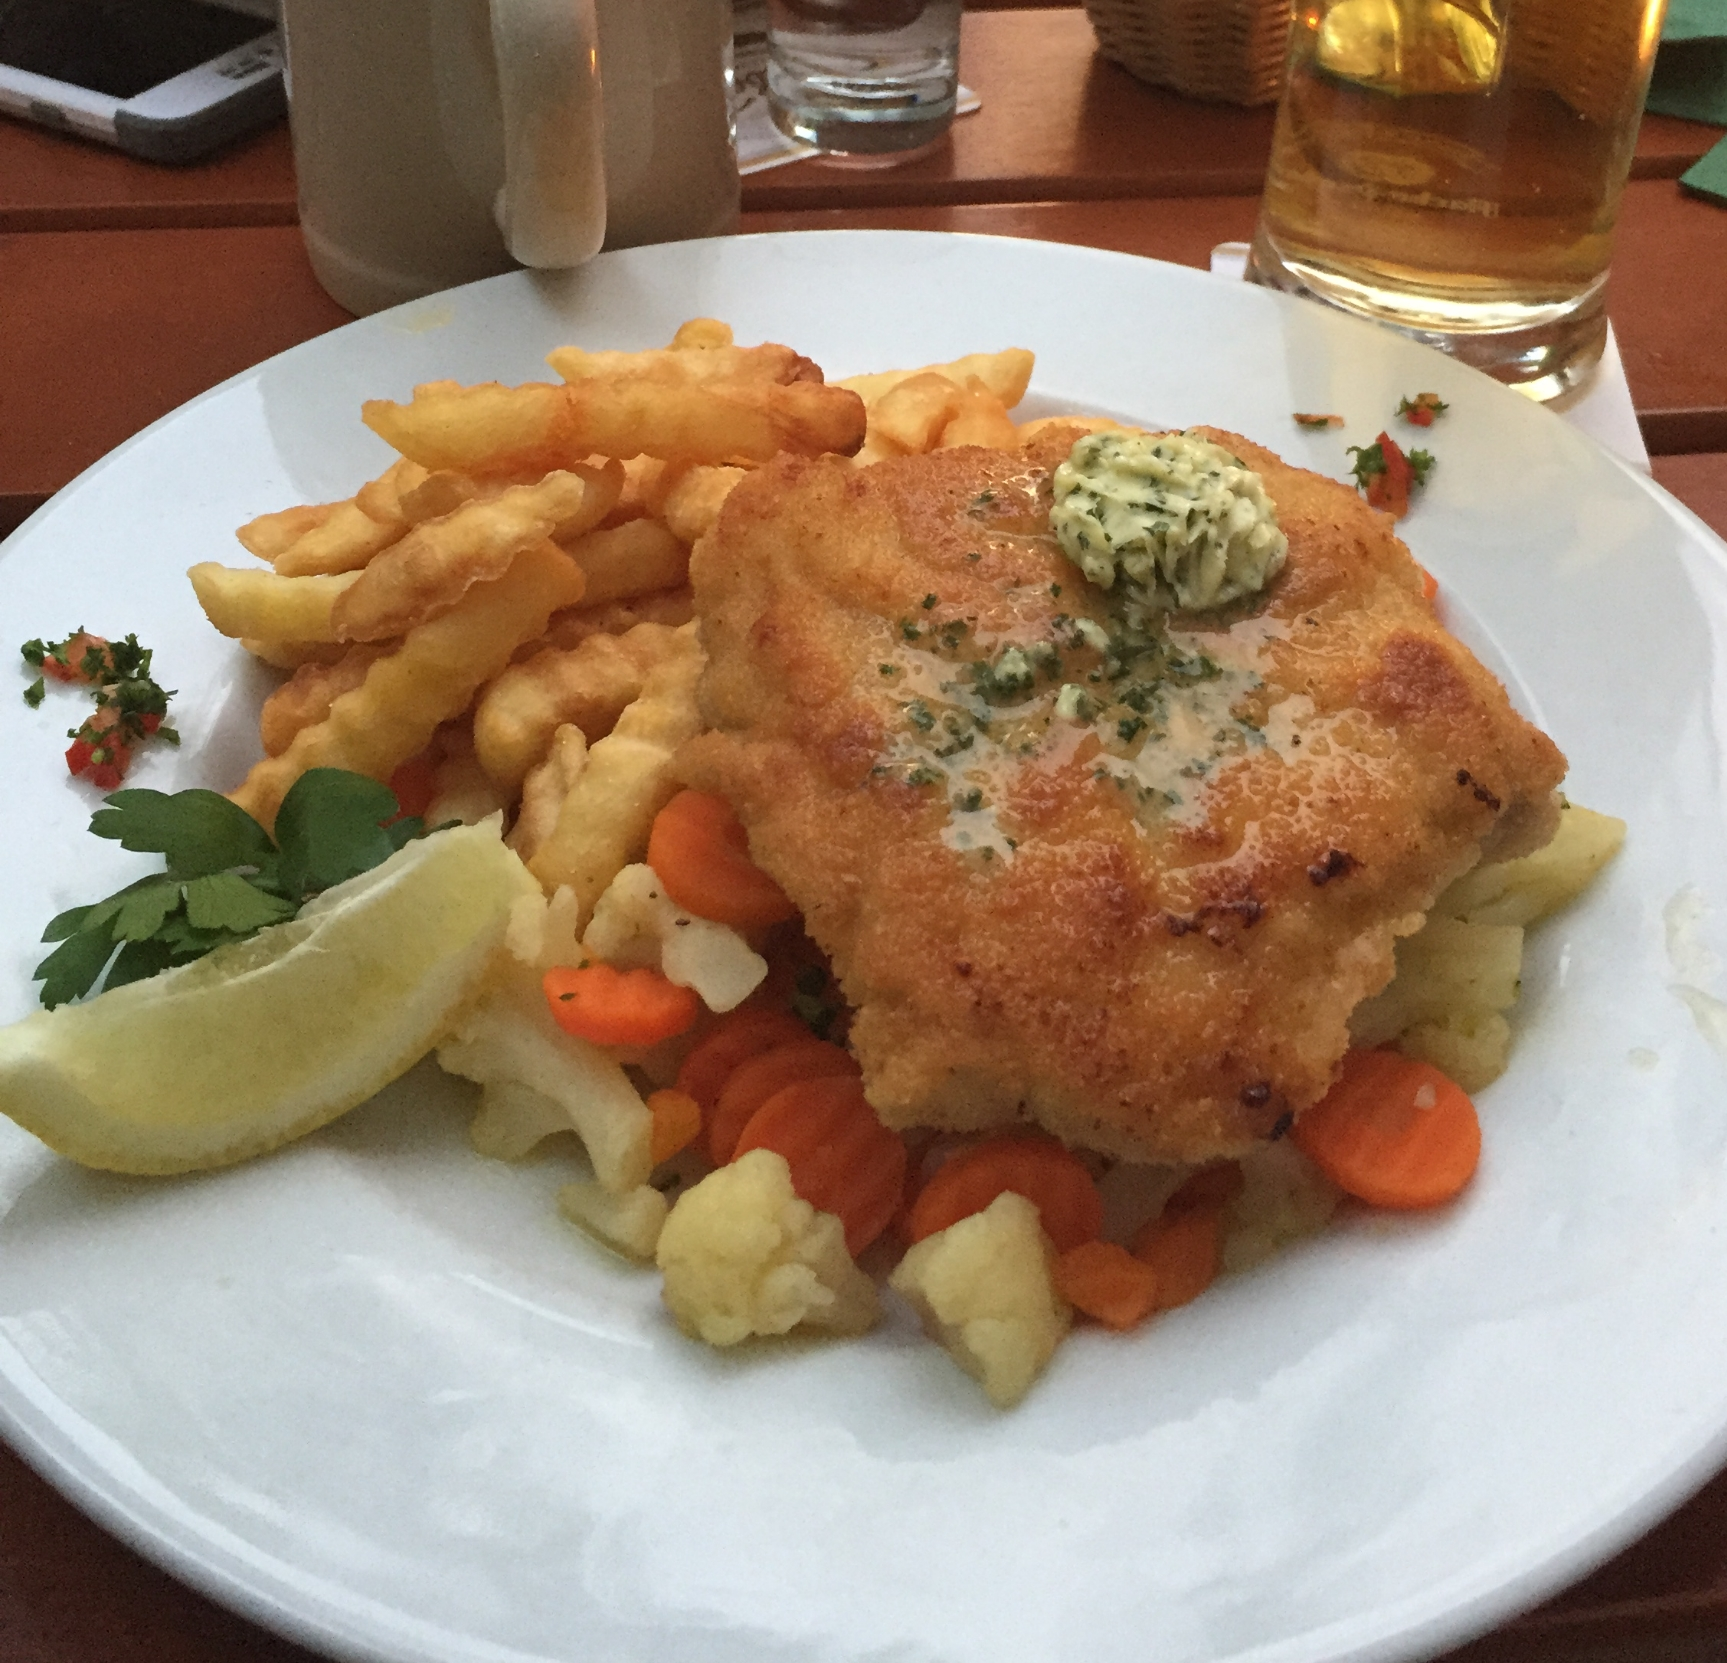 The incomparable Braumeister Schnitzel